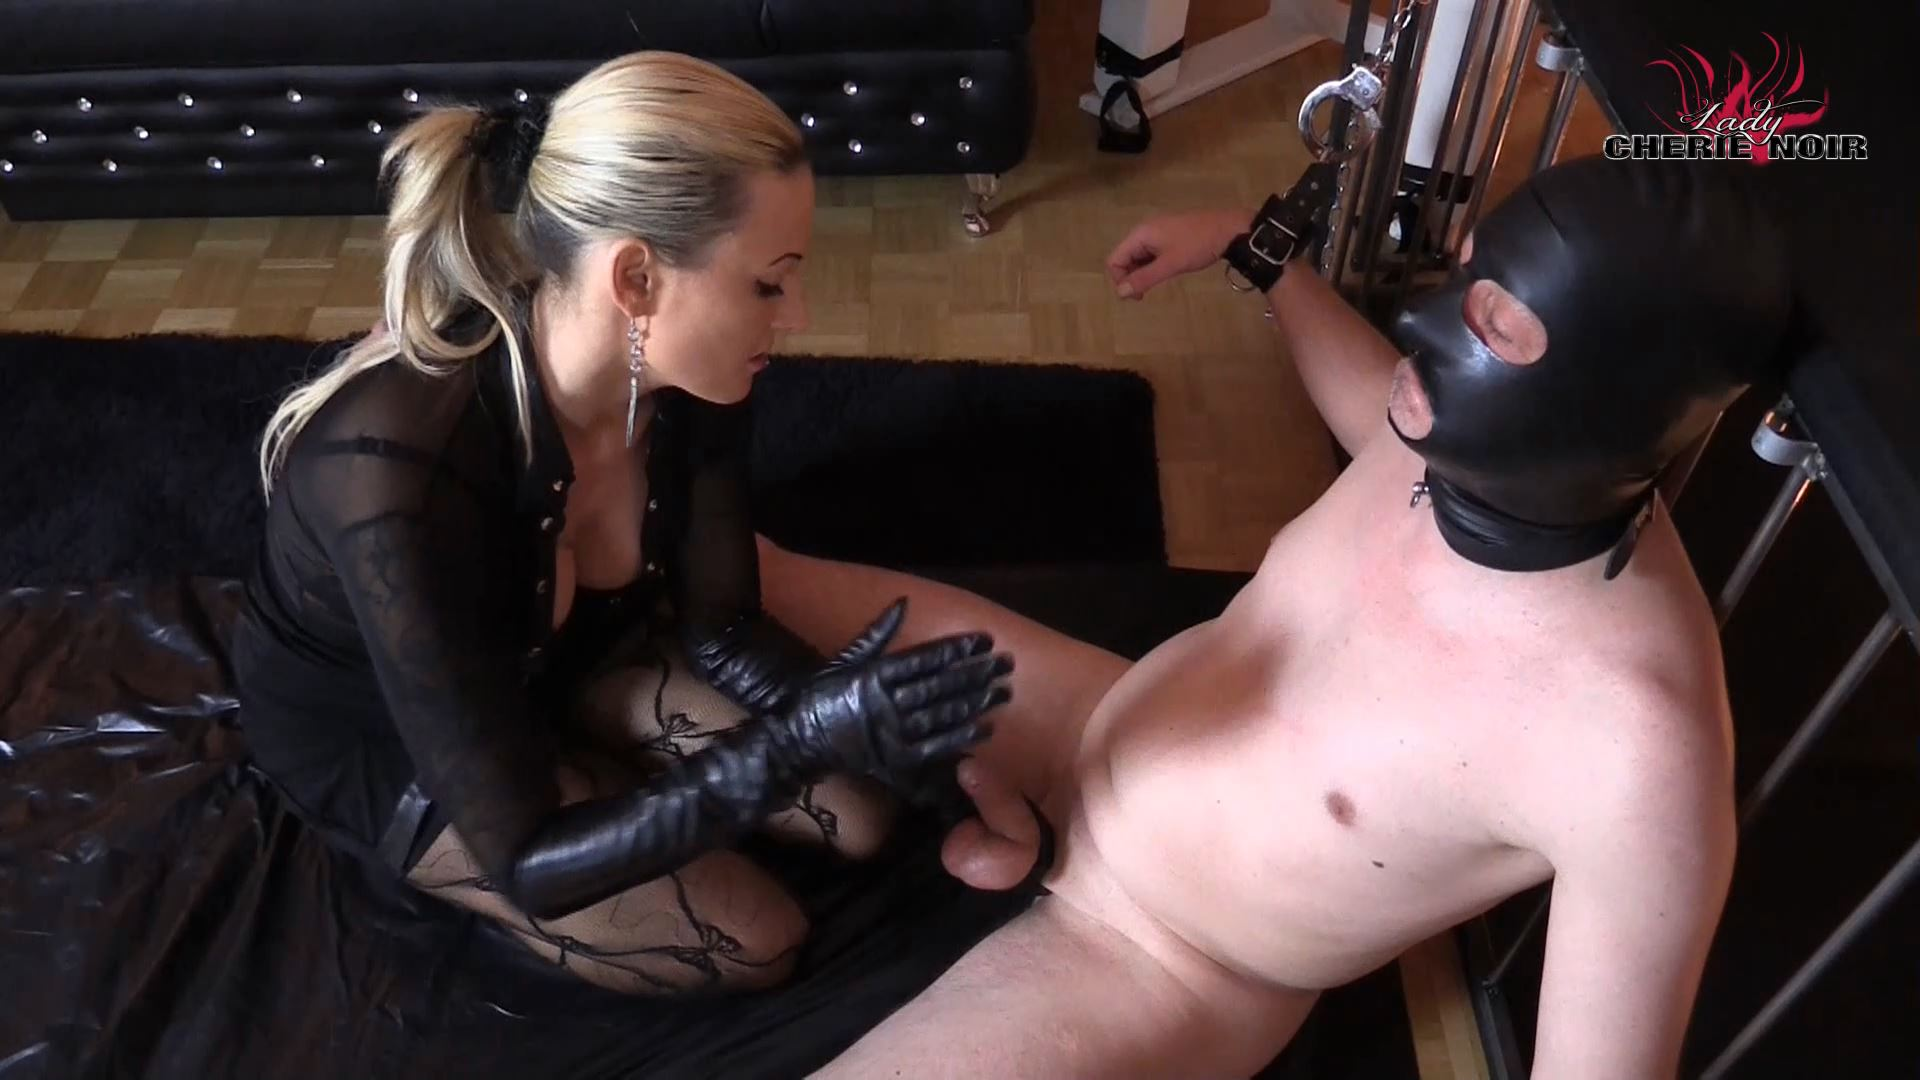 Femdom jerk off instruction with sex toys and humiliation 5